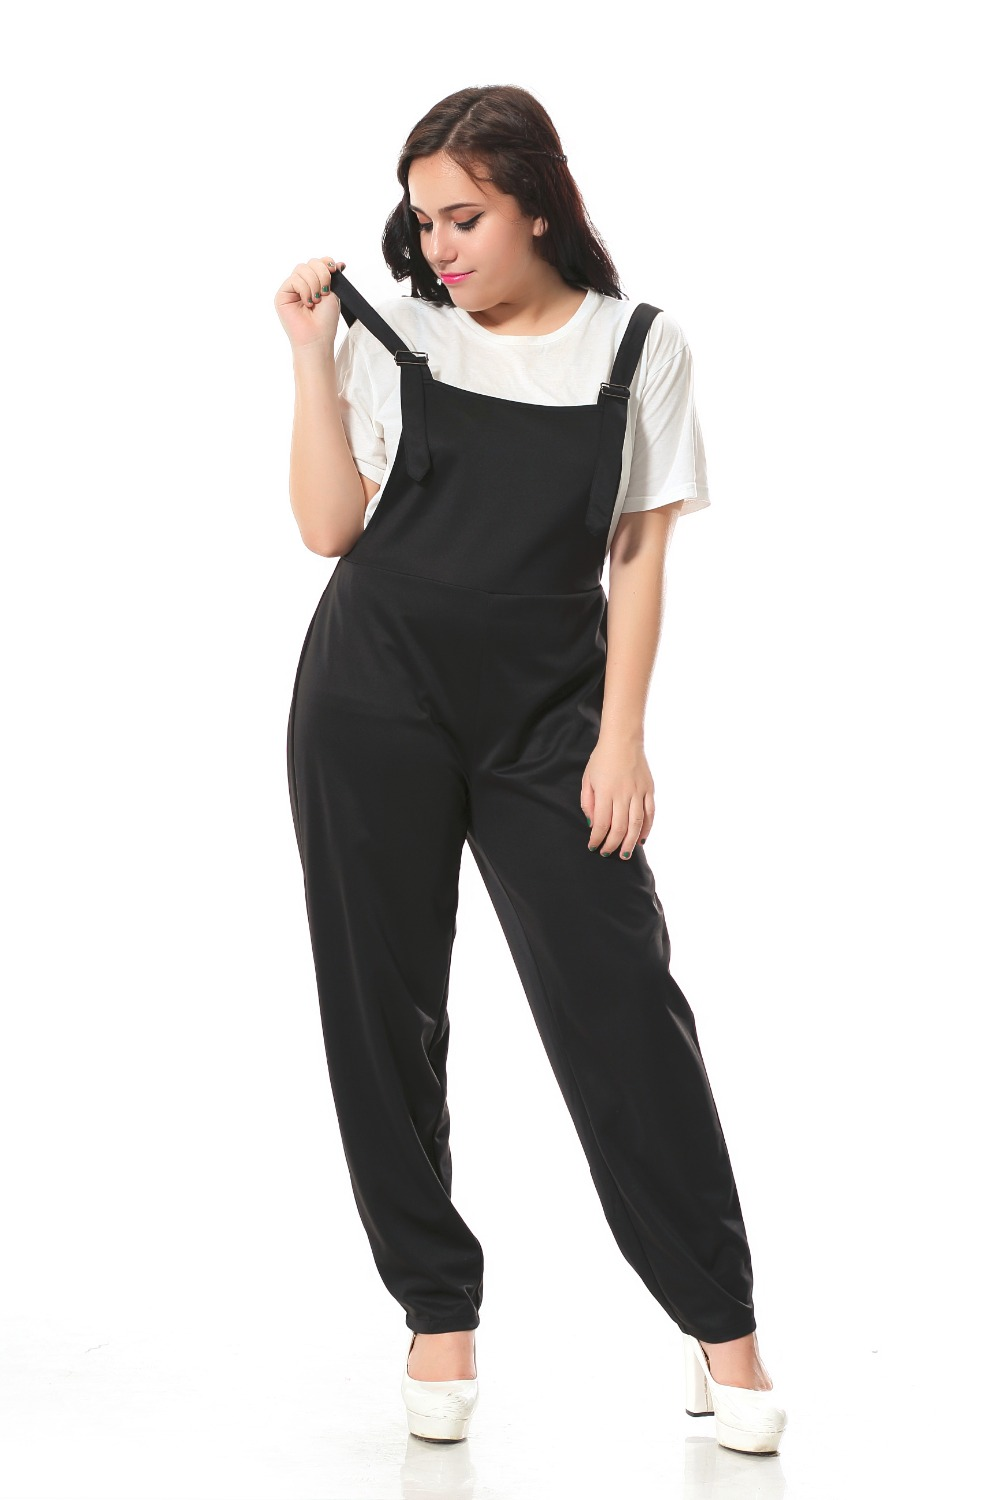 Spring Jumpsuits Promotion-Shop for Promotional Spring Jumpsuits ...